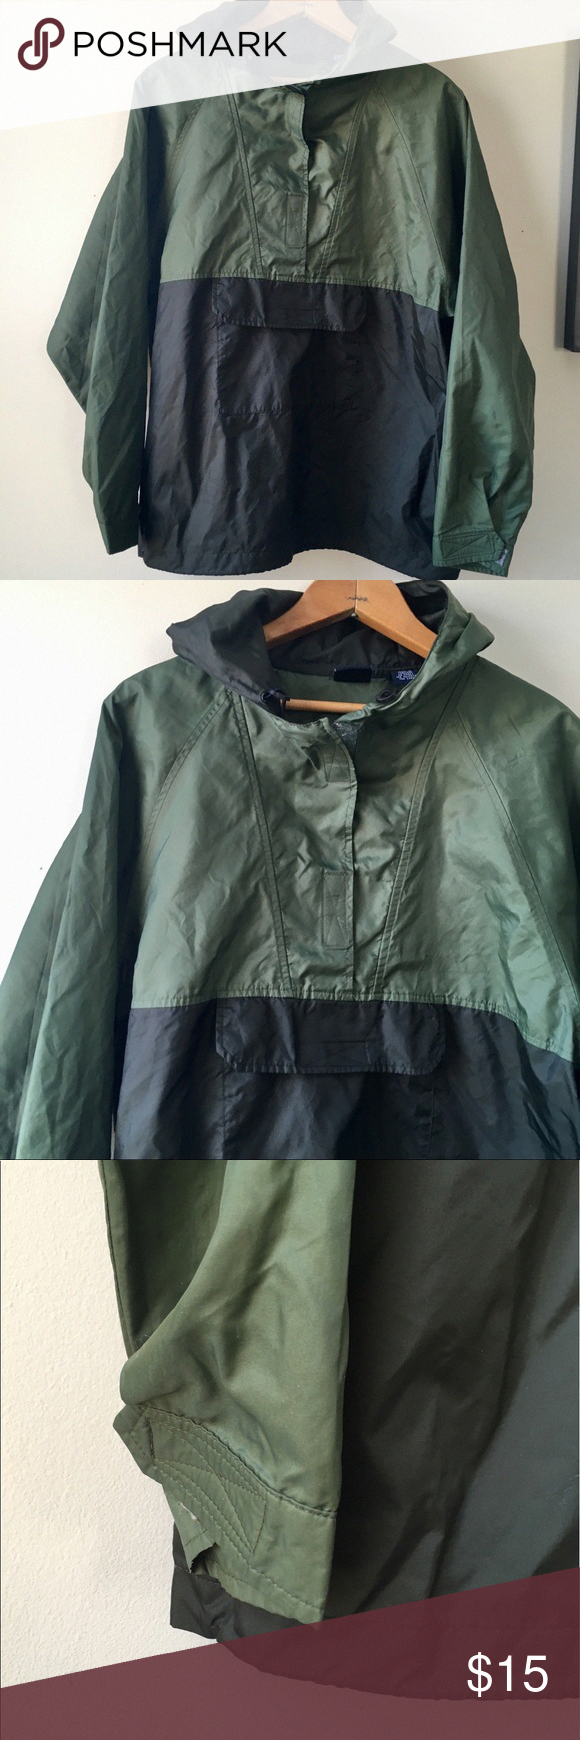 Raincoats For Women The North Face M&SWomensRaincoat